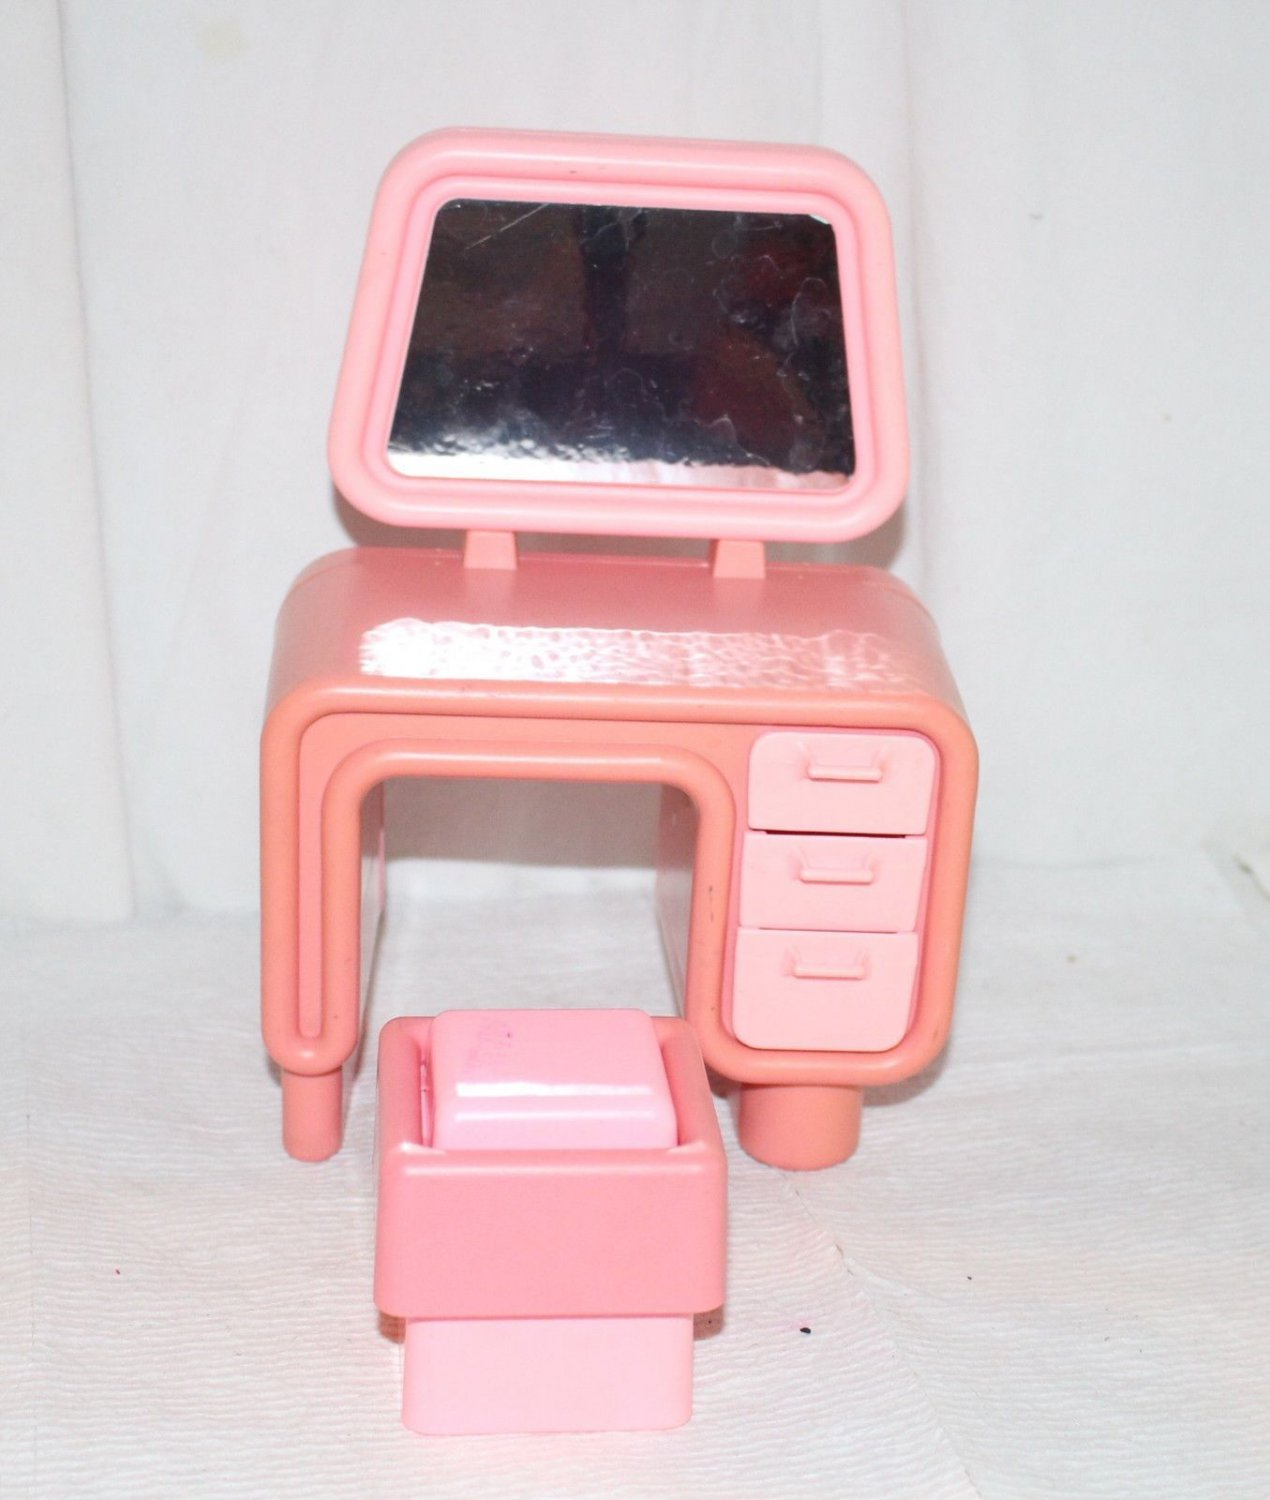 Barbie Dream House Orange and Pink Desk and Bench Mod Era